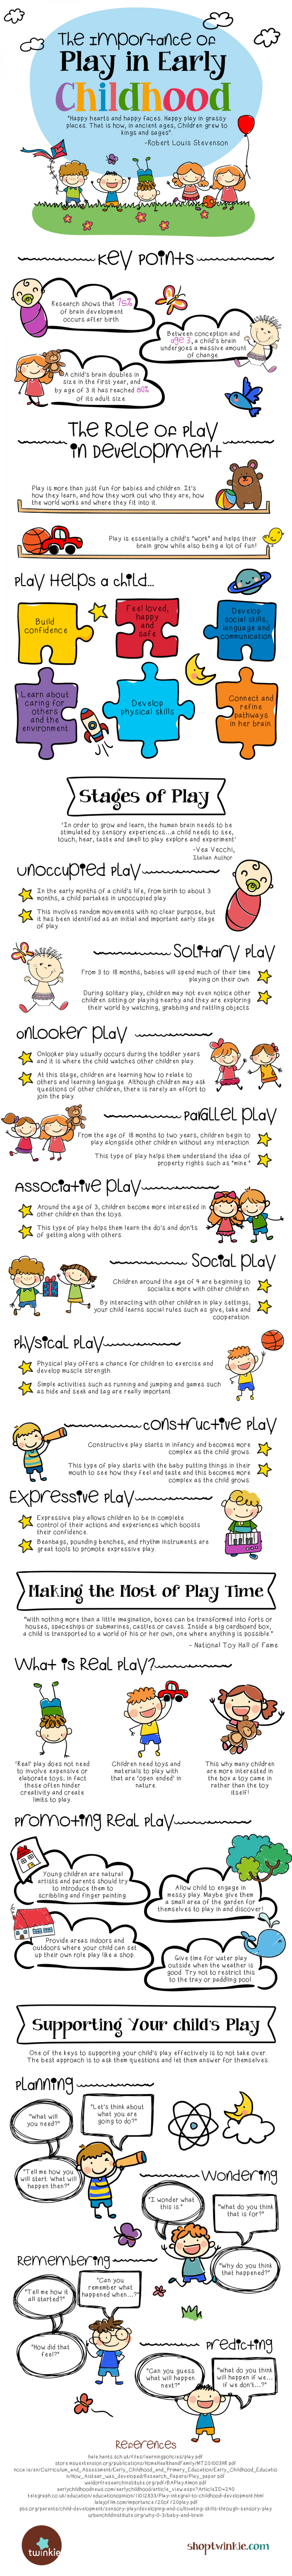 The Importance of Play in Early Childhood Infographic